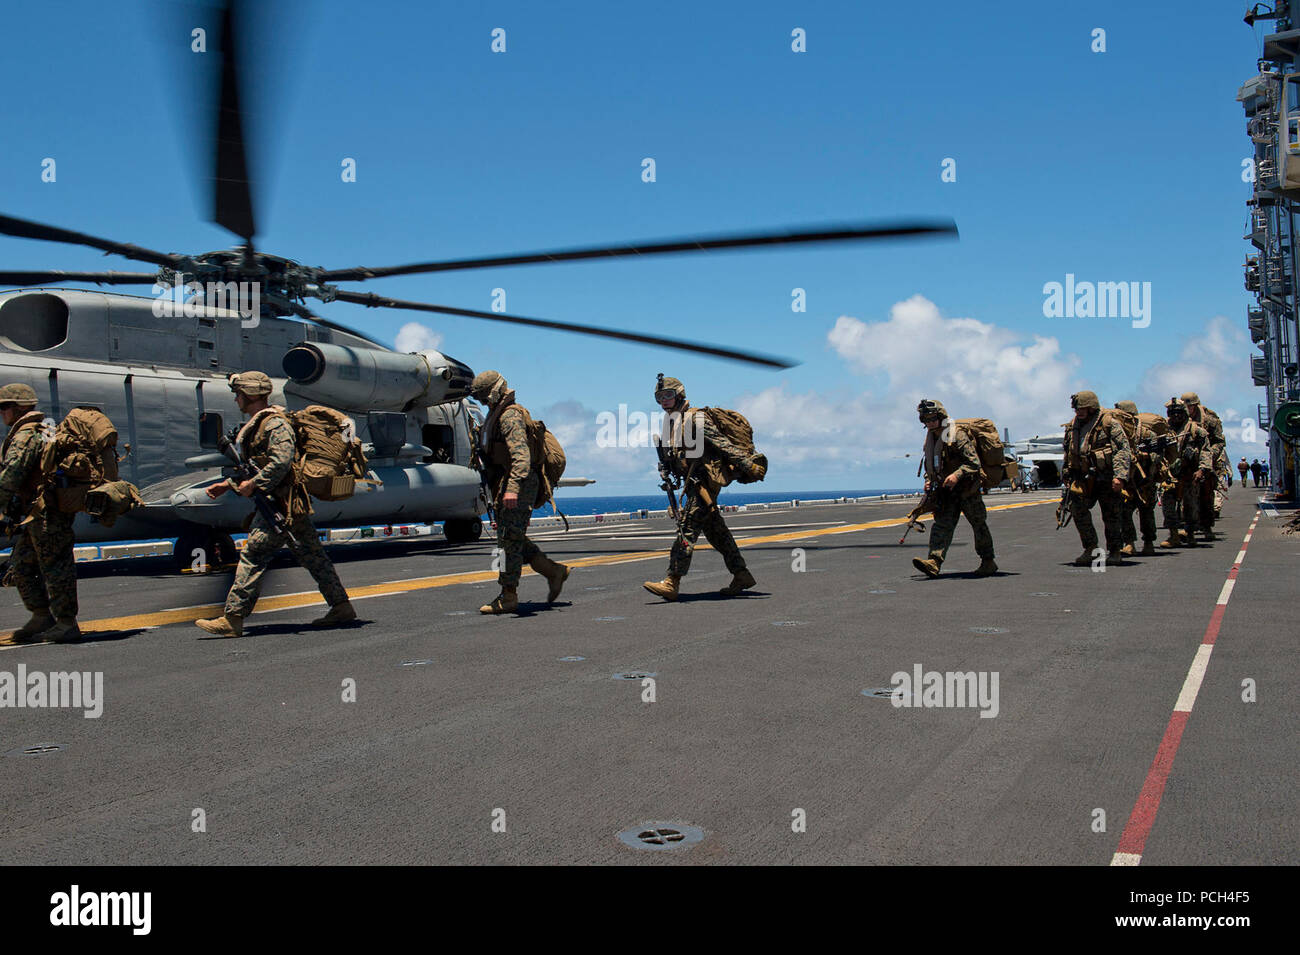 Marines assigned to the 3rd Battalion, 3rd Marine Regiment, board a CH-53E Super Sea Stallion helicopter, assigned to Heavy Marine Helicopter Squadron 463 (HMH-463), on the flight deck of the amphibious assault ship USS Peleliu (LHA 5) during Rim of the Pacific (RIMPAC) Exercise 2014. Twenty-two nations, 49 ships and six submarines, more than 200 aircraft and 25,000 personnel are participating in RIMPAC from June 26 to Aug. 1 in and around the Hawaiian Islands and Southern California. The world's largest international maritime exercise, RIMPAC provides a unique training opportunity that helps  - Stock Image